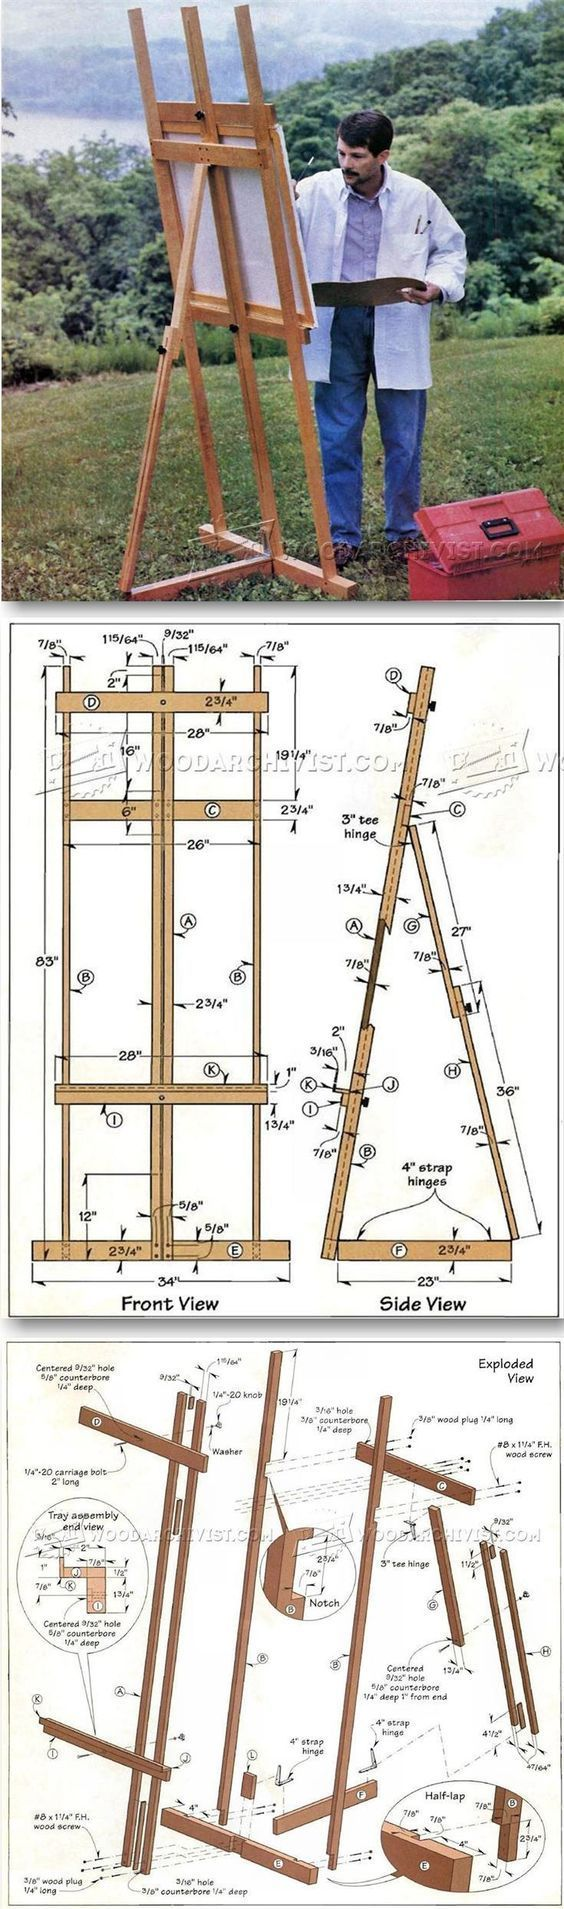 DIY Art Easel - Woodworking Plans and Projects   WoodArchivist.com